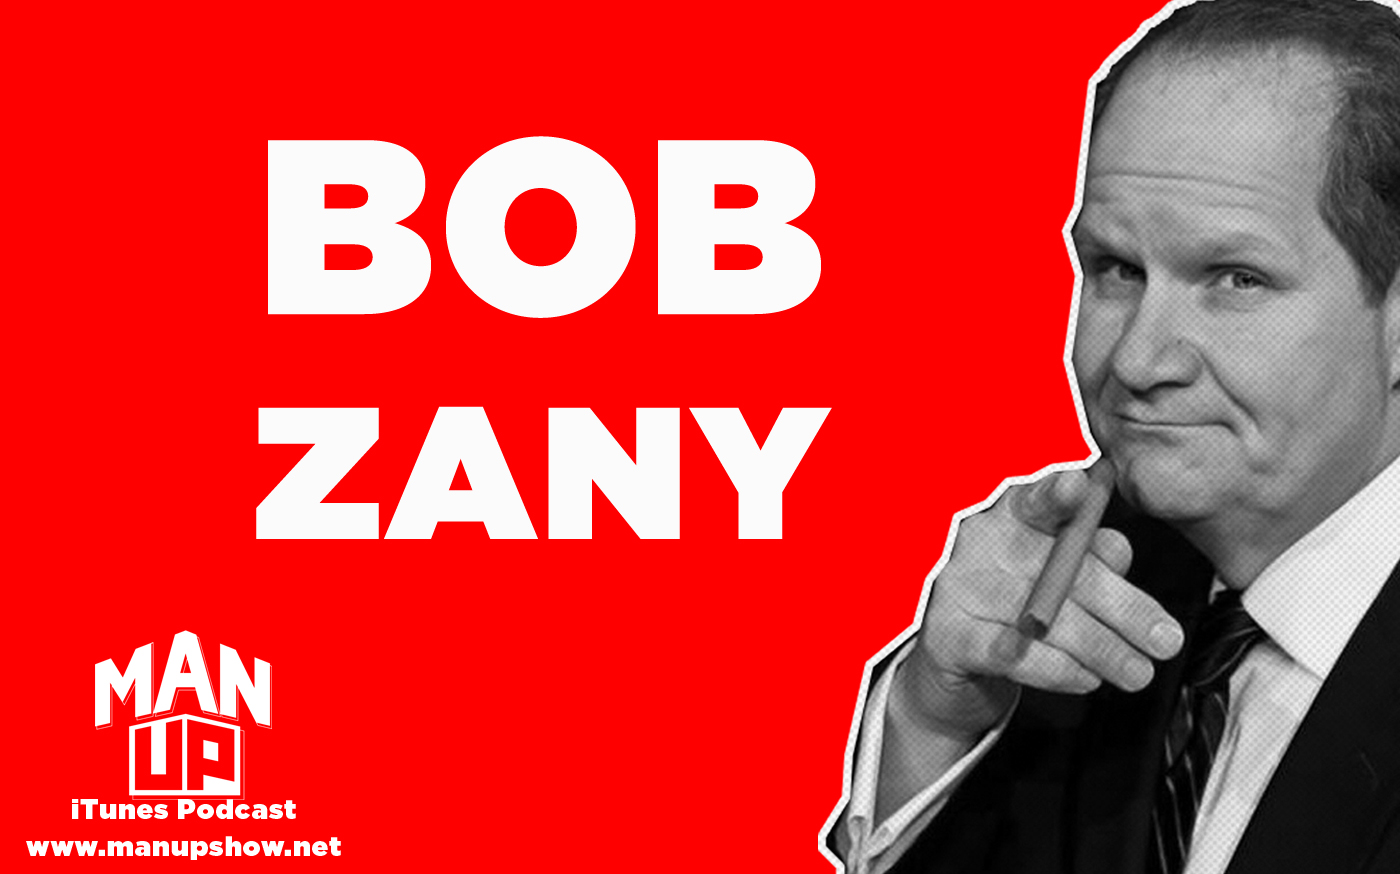 Man-Up-podcast-Episode-022-Bob-Zany.jpg